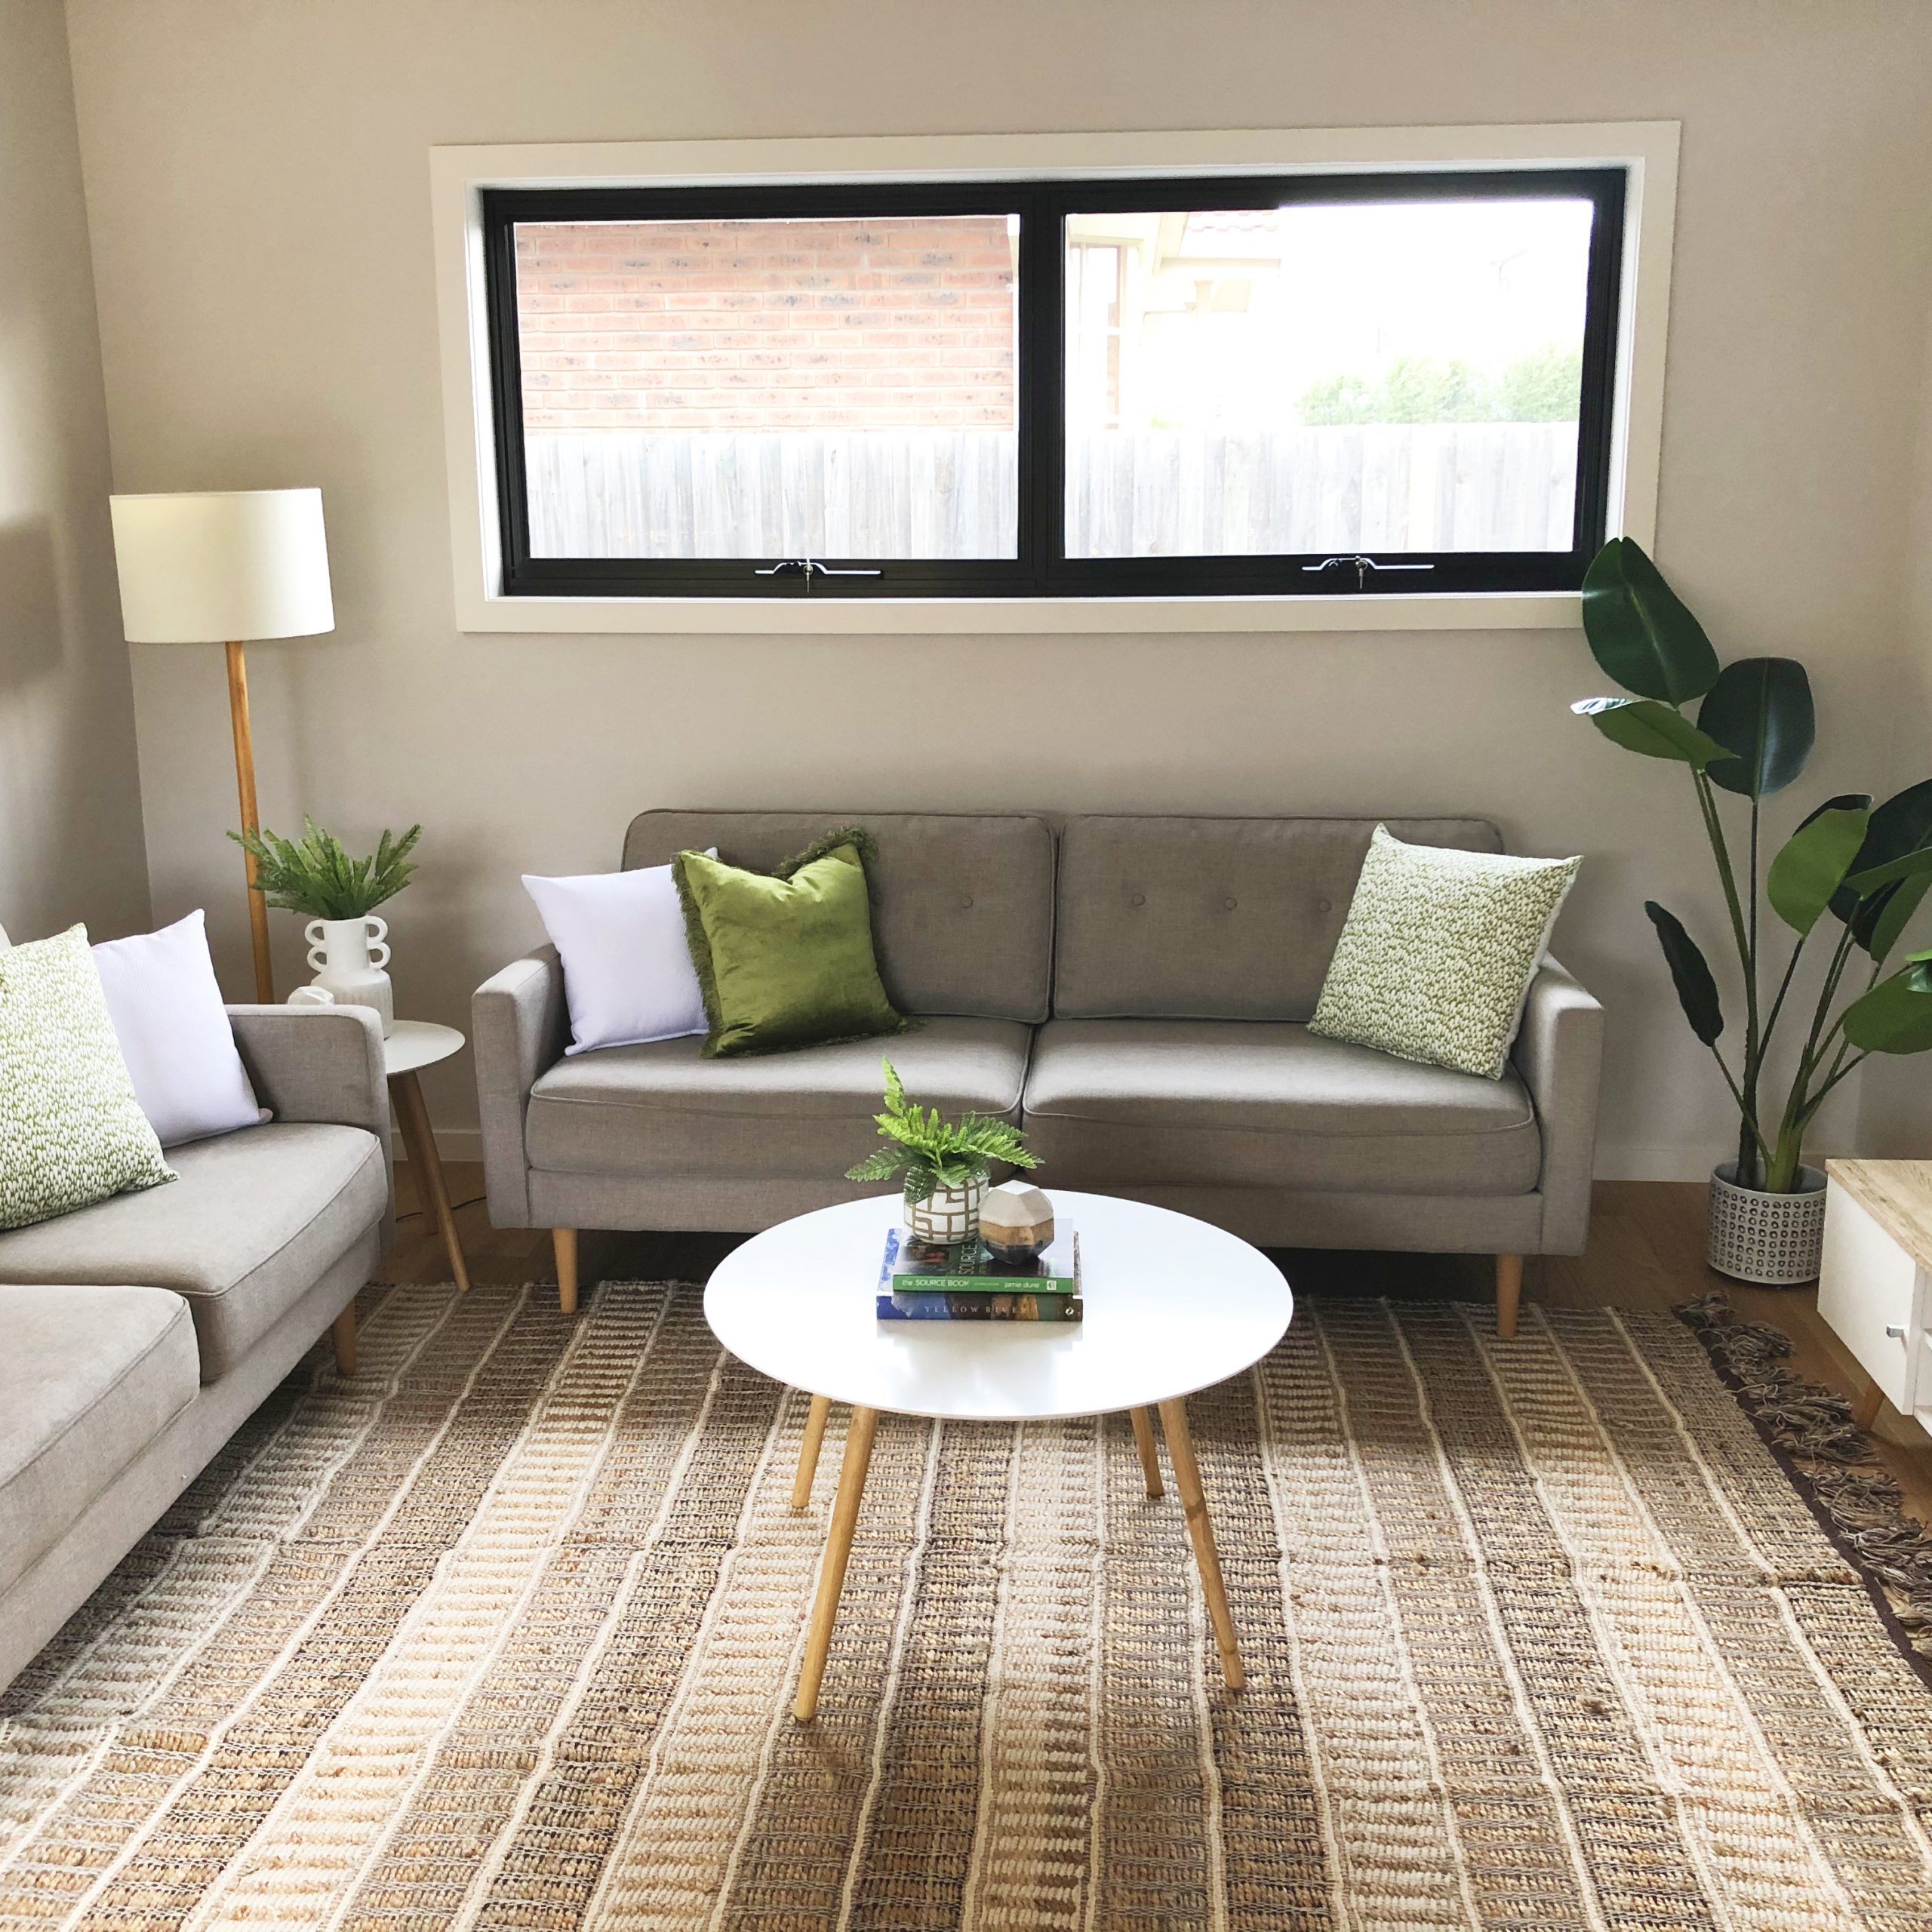 Styled Living room with green accents Heidelberg heights townhouse